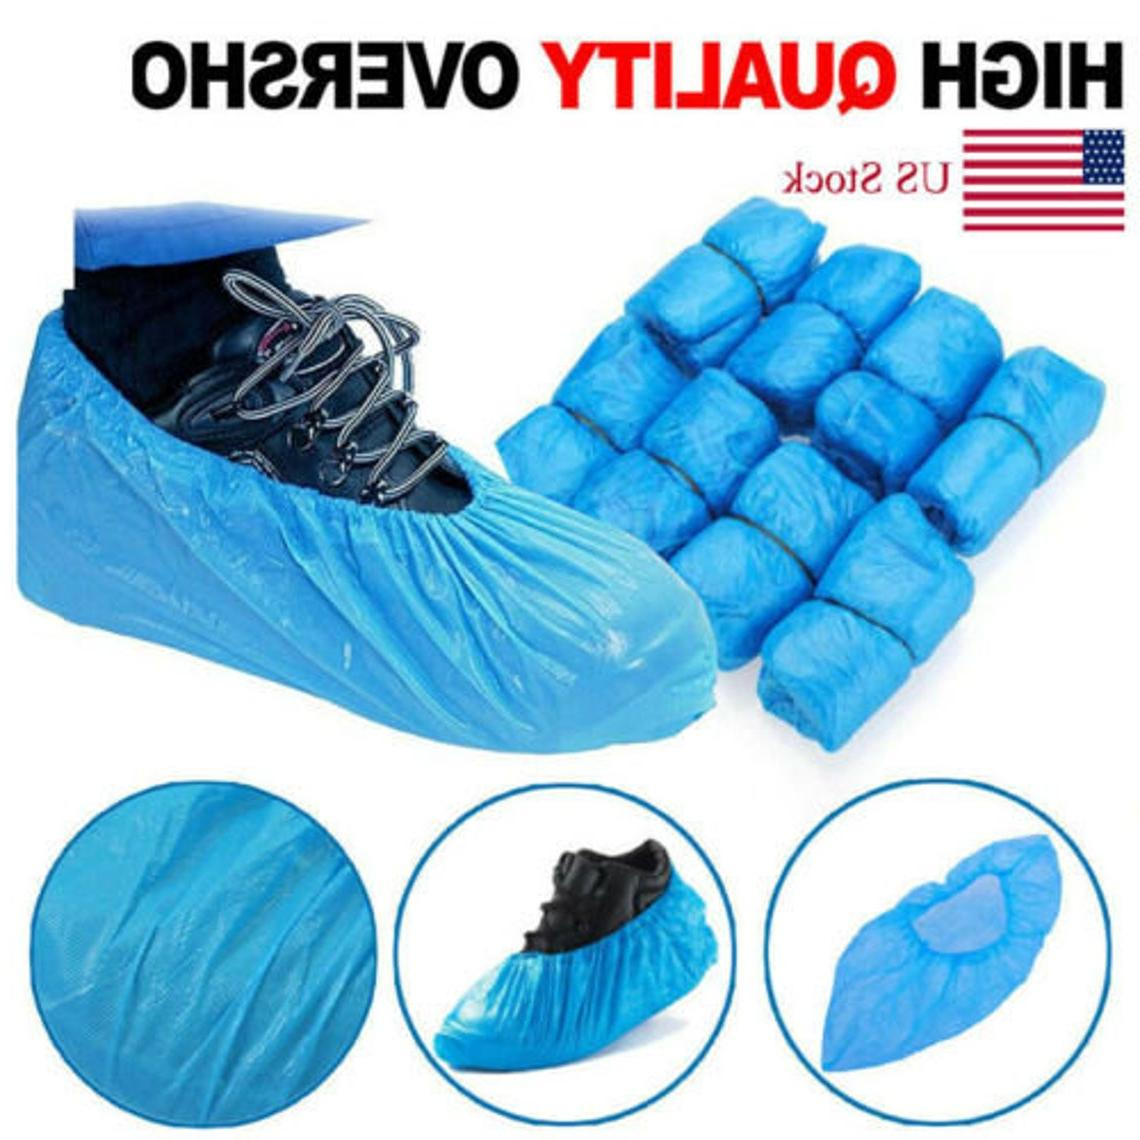 Disposable Non Slip Shoe Covers - Hospitality, Food Lab